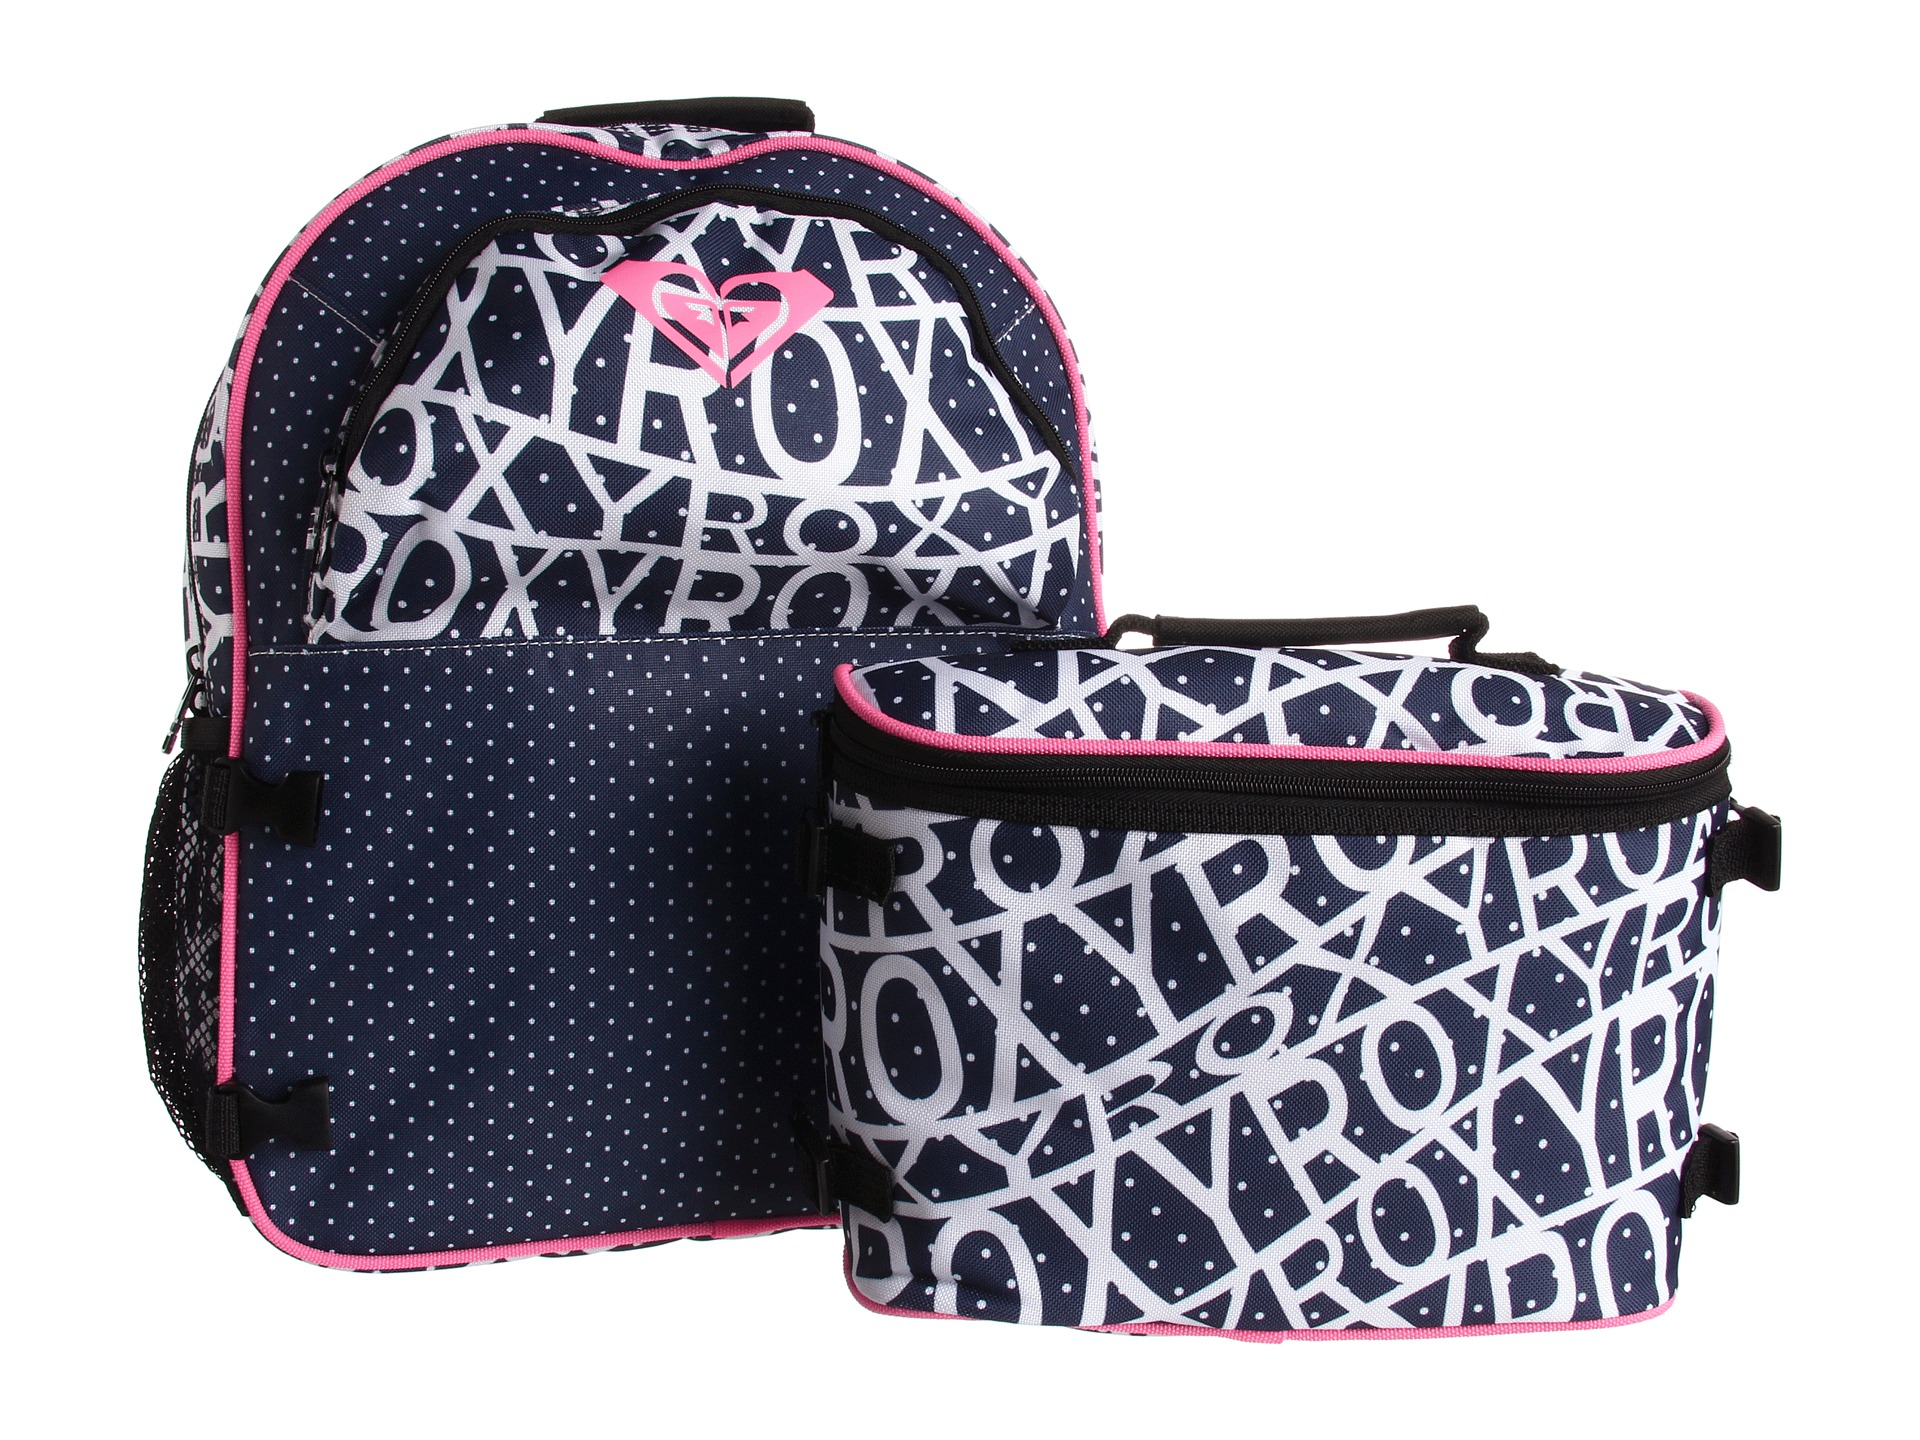 6860f727d3f Roxy Backpacks And Lunch Bags- Fenix Toulouse Handball